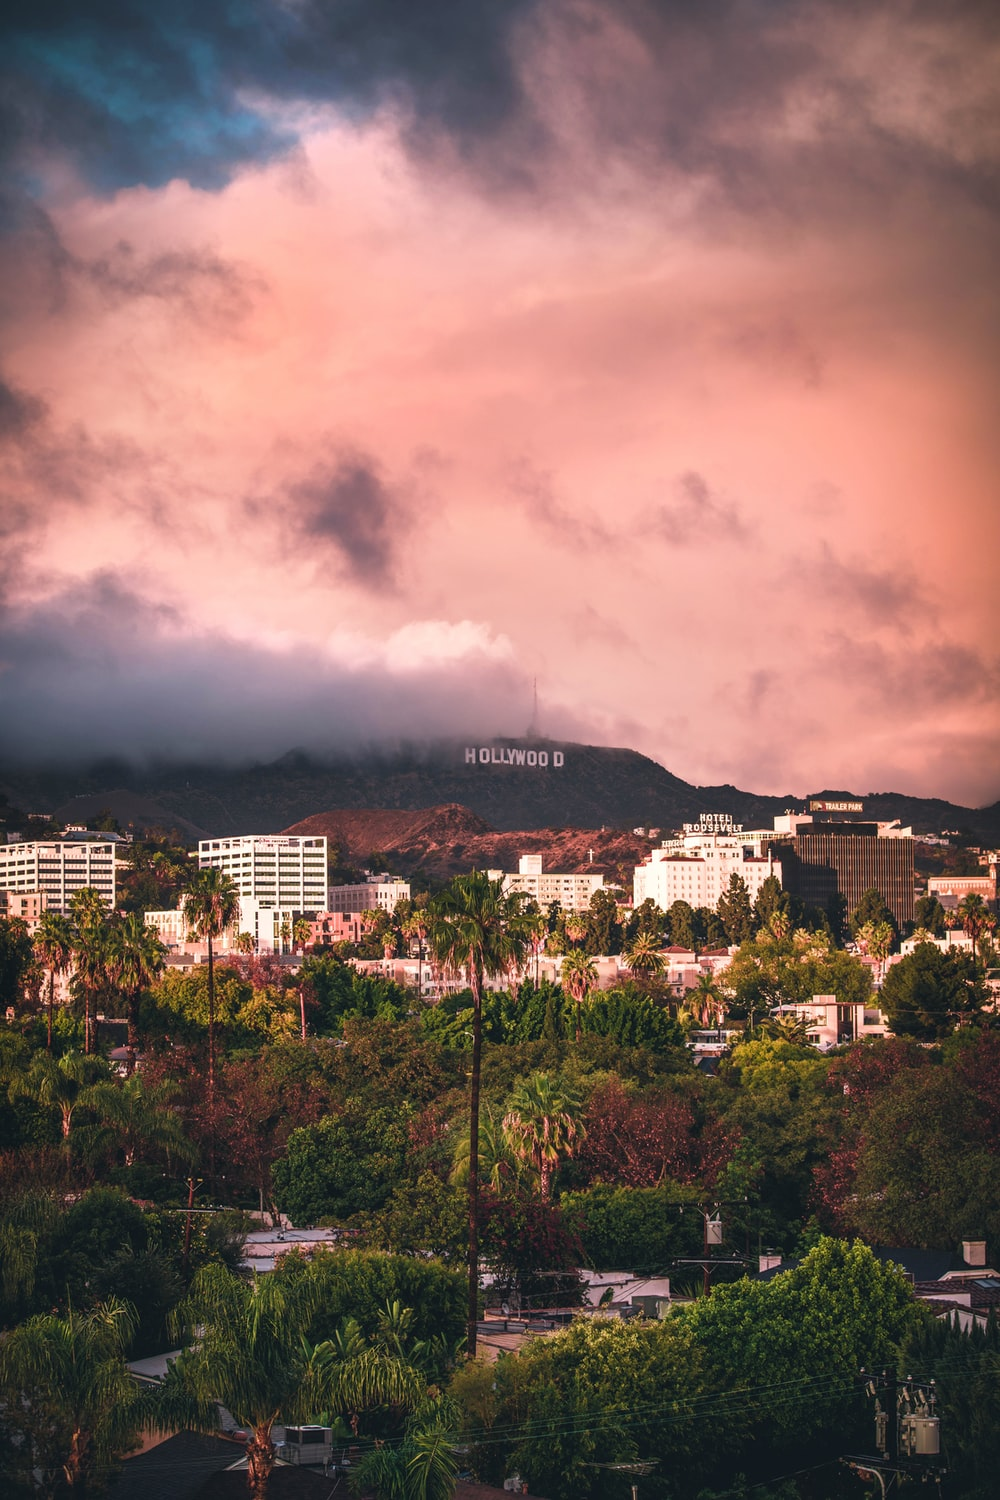 Hollywood sign from Los Angeles